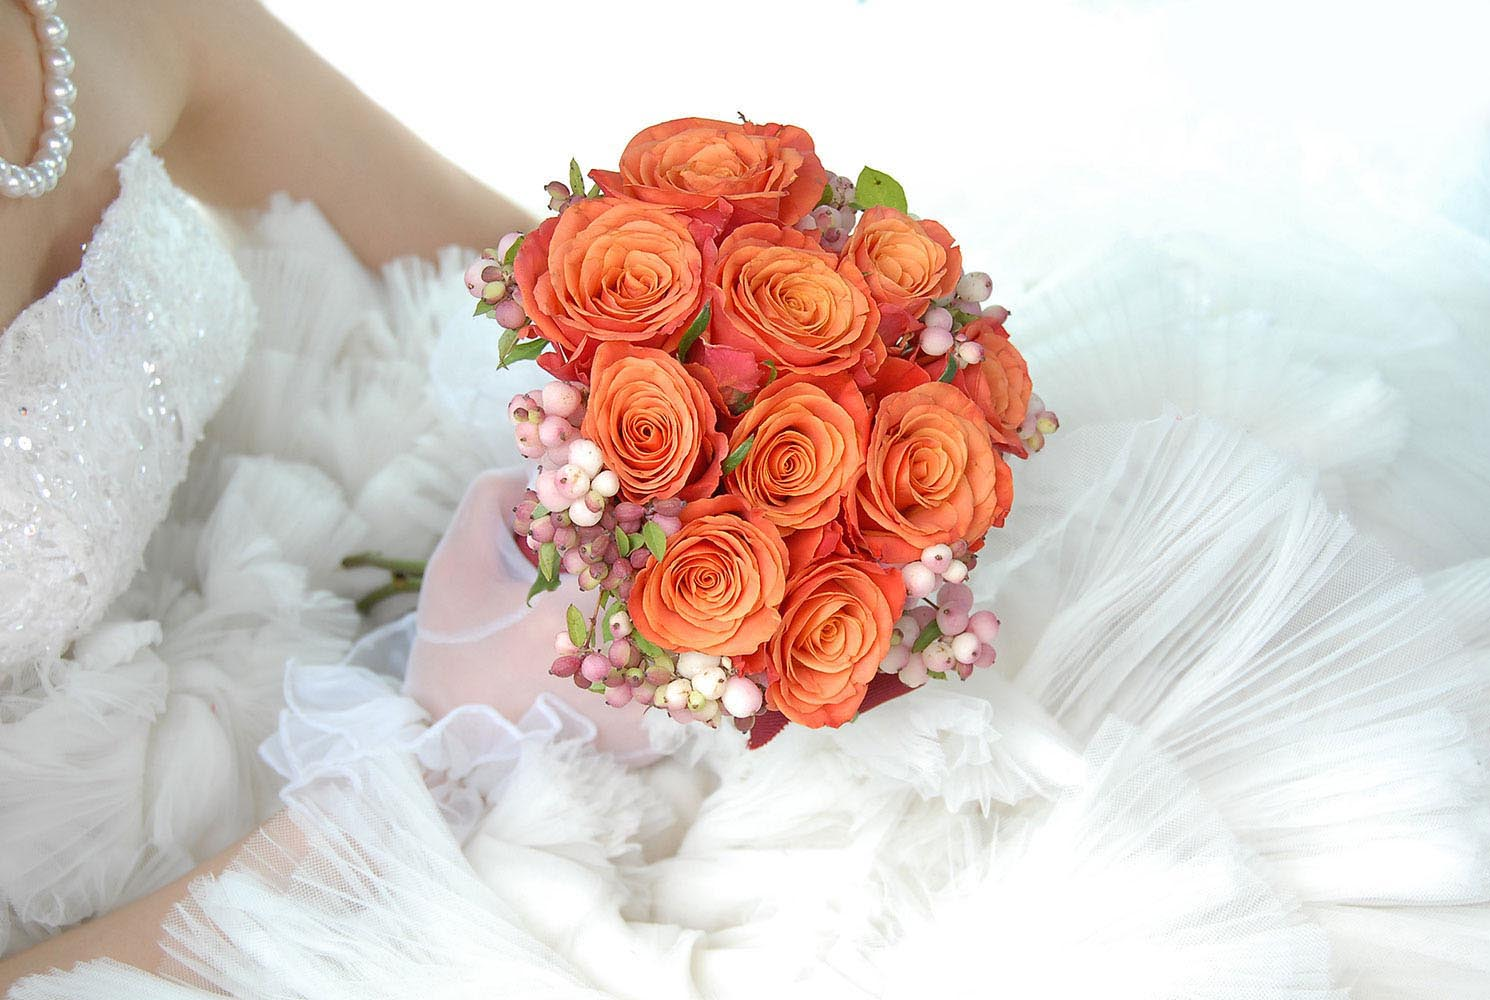 Orange wedding bouquet held by bride in dress and pearl necklace